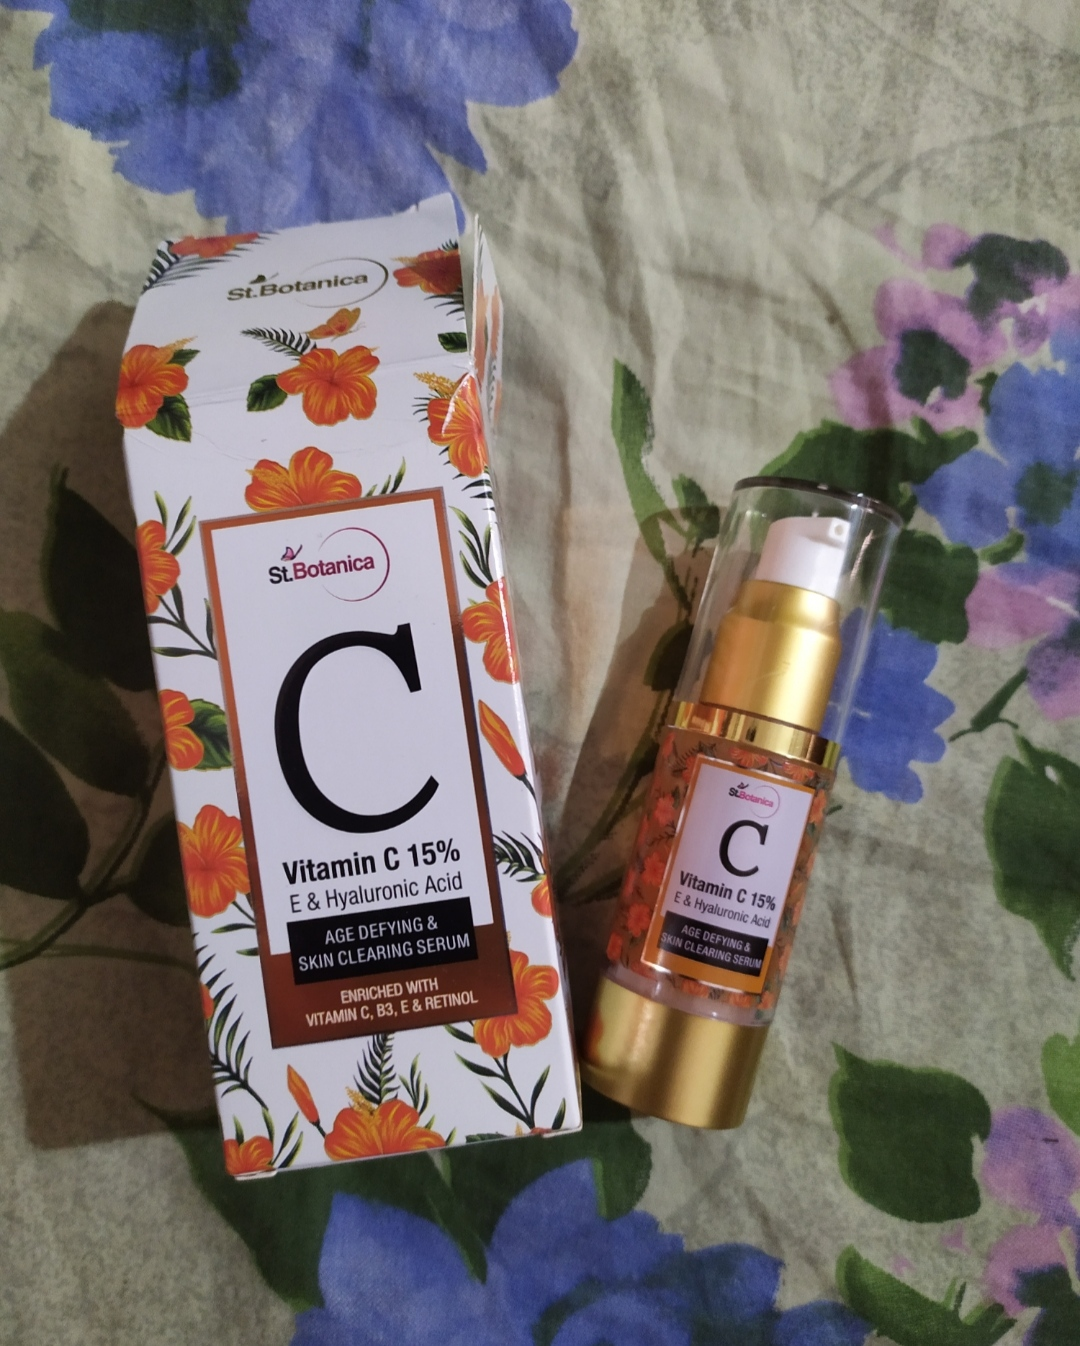 St.Botanica Vitamin C 15% Age Defying & Skin Clearing Serum-One of the best vitamin c serum-By unmita